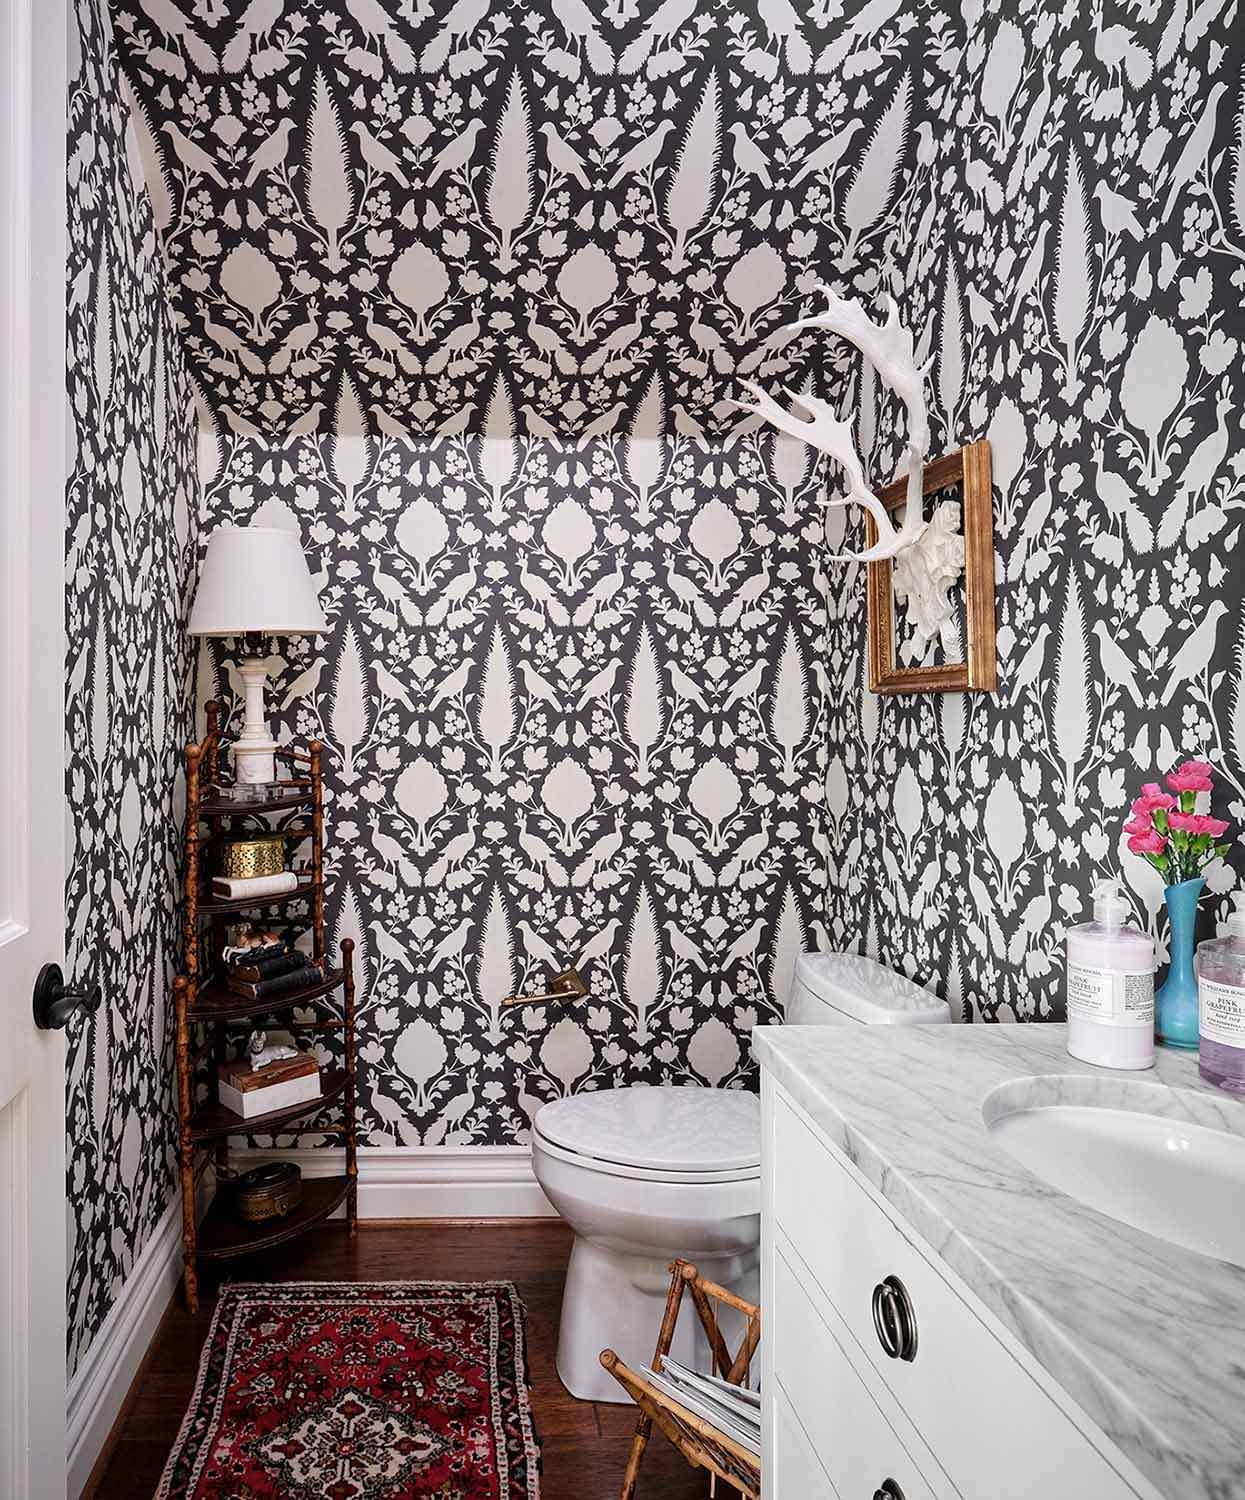 Black and white fabric-inspired graphic wallpaper in powder bath, Paper Moon Painting wallcovering installer, San Antonio TX